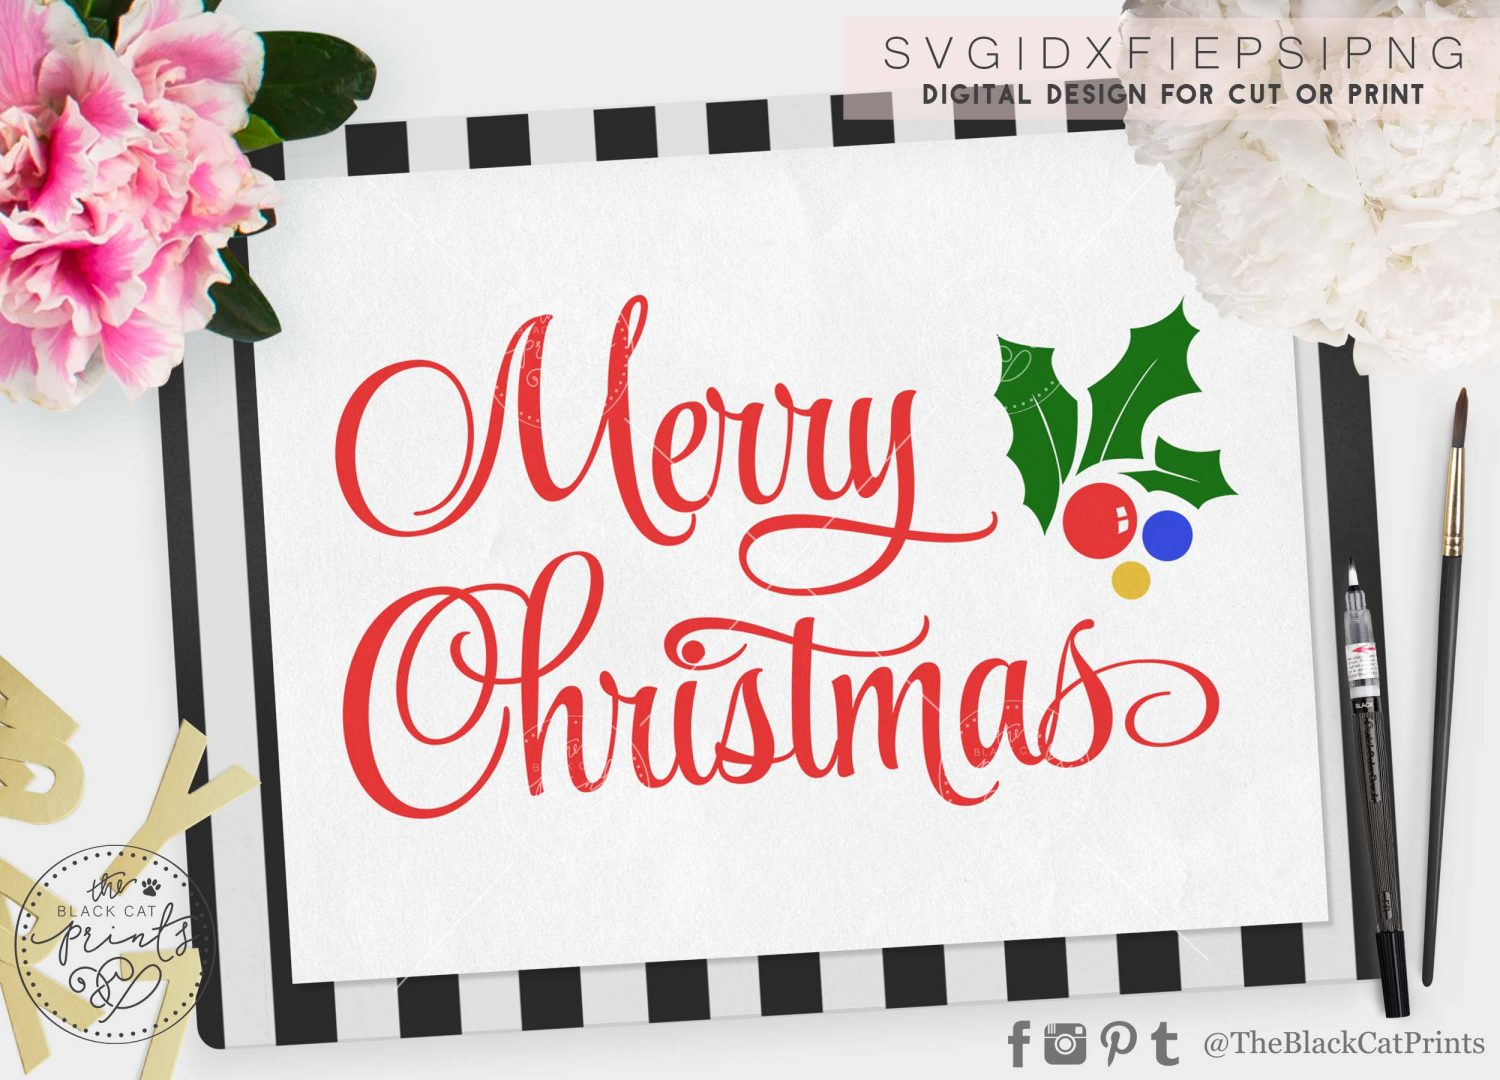 merry christmas svg theblackcatprints